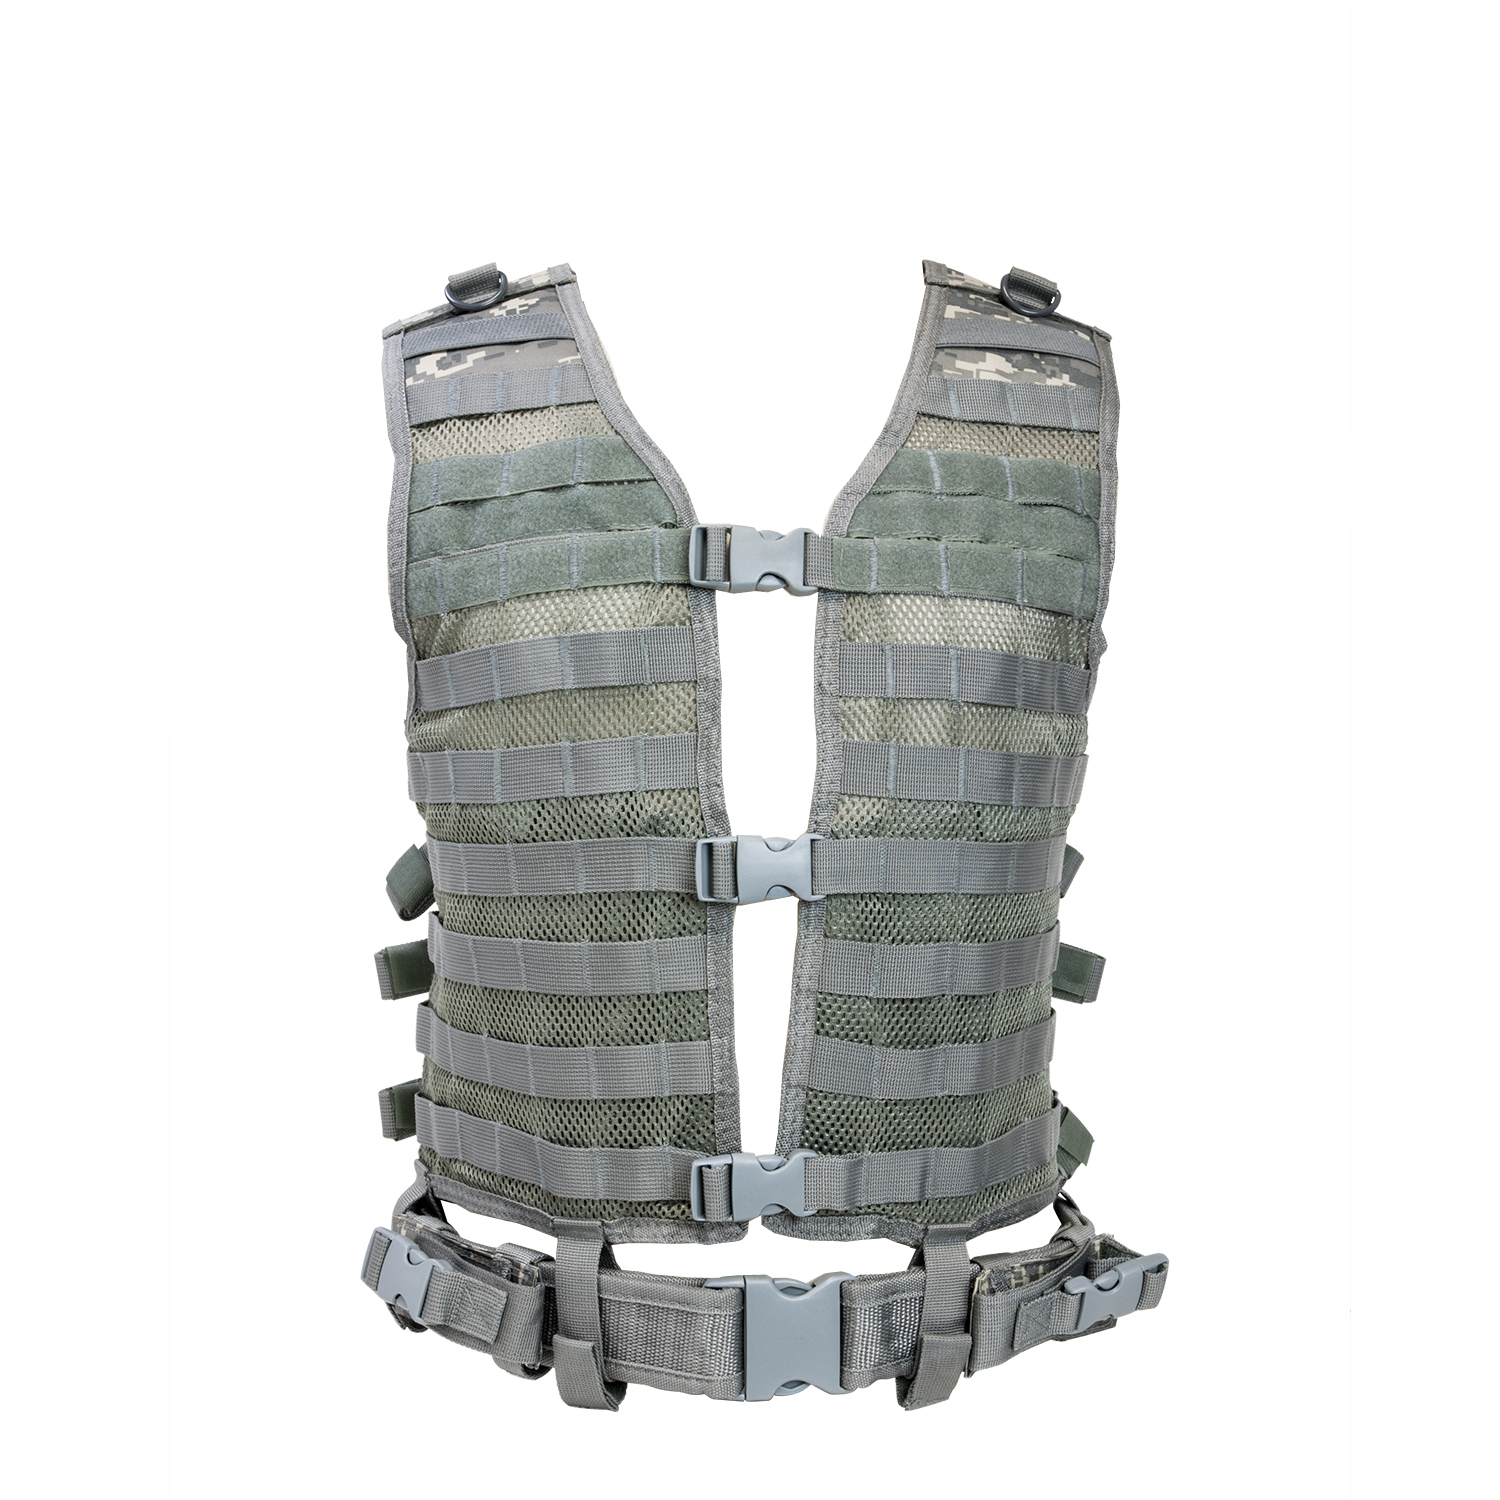 PALS MOLLE Tactical Combat Vest With Web Belt - Multiple Colors